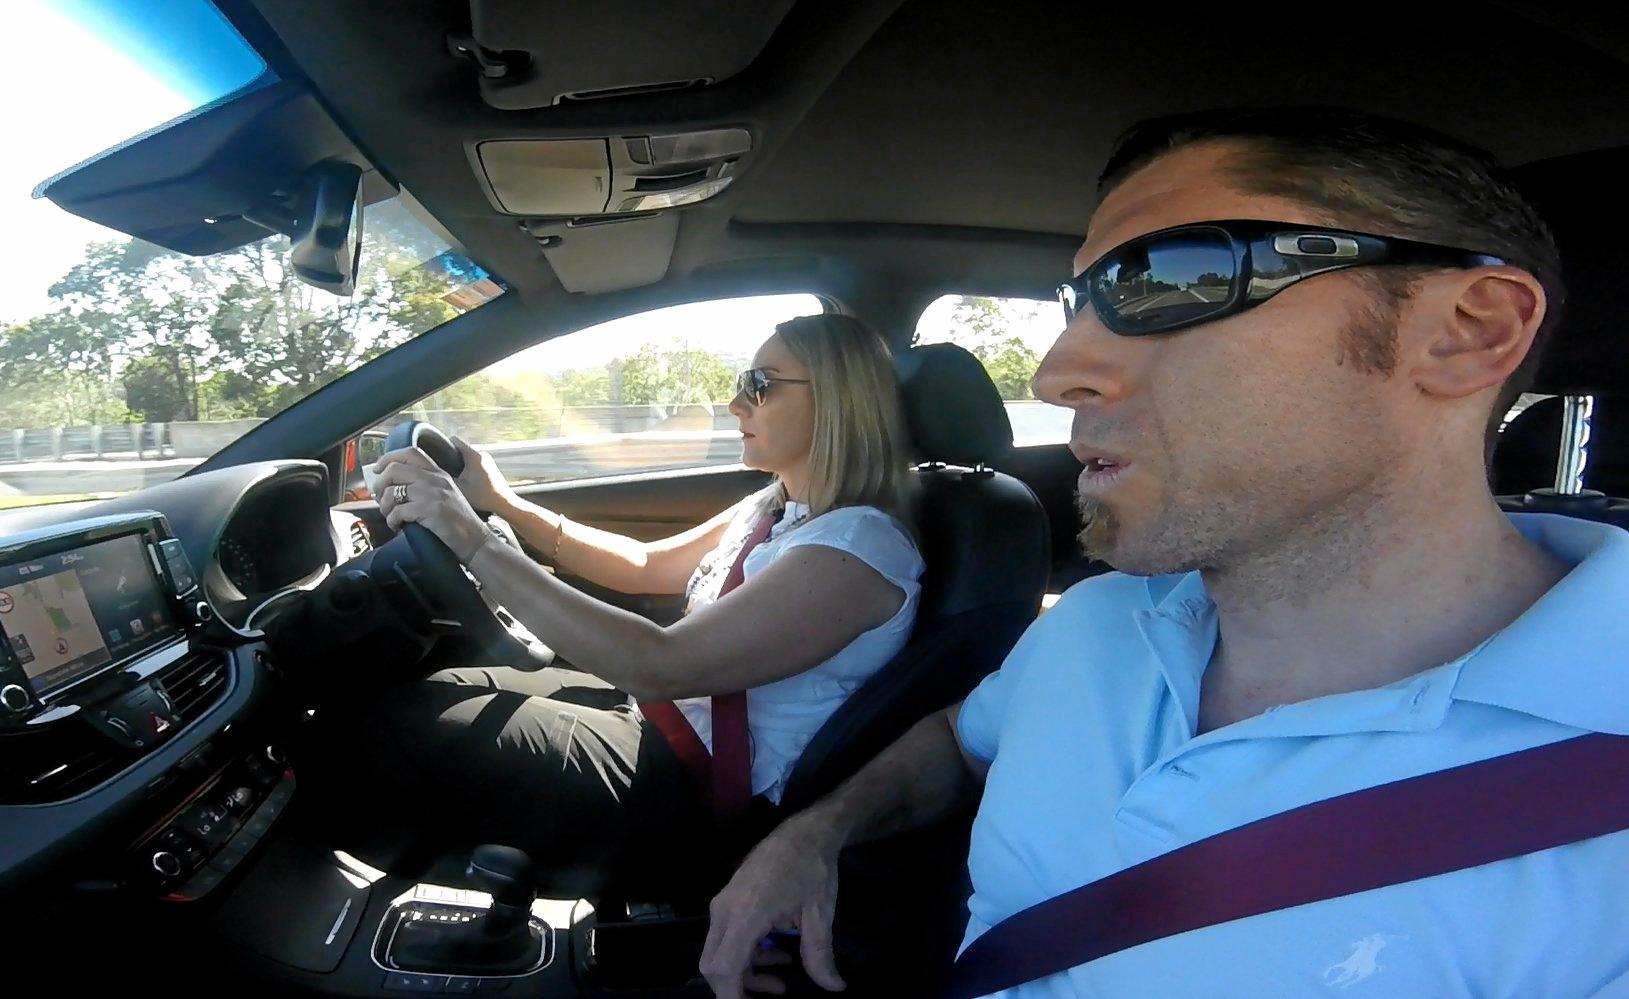 Kelly and Grant Edwards test driving the Hyundai i30 SR Premium.